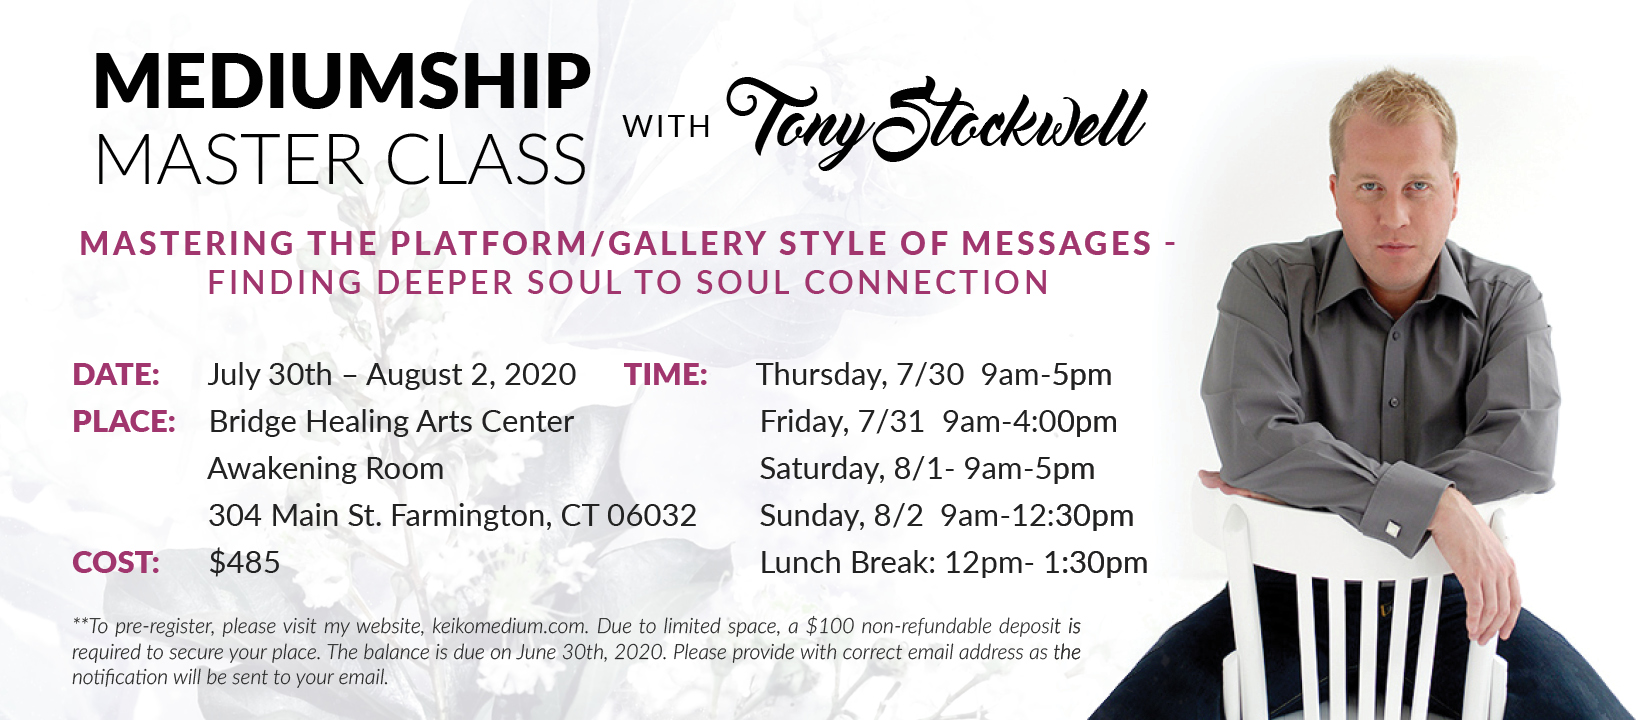 Mediumship Master Class with Tony Stockwell @ Bridge Healing Arts Center | Farmington | Connecticut | United States